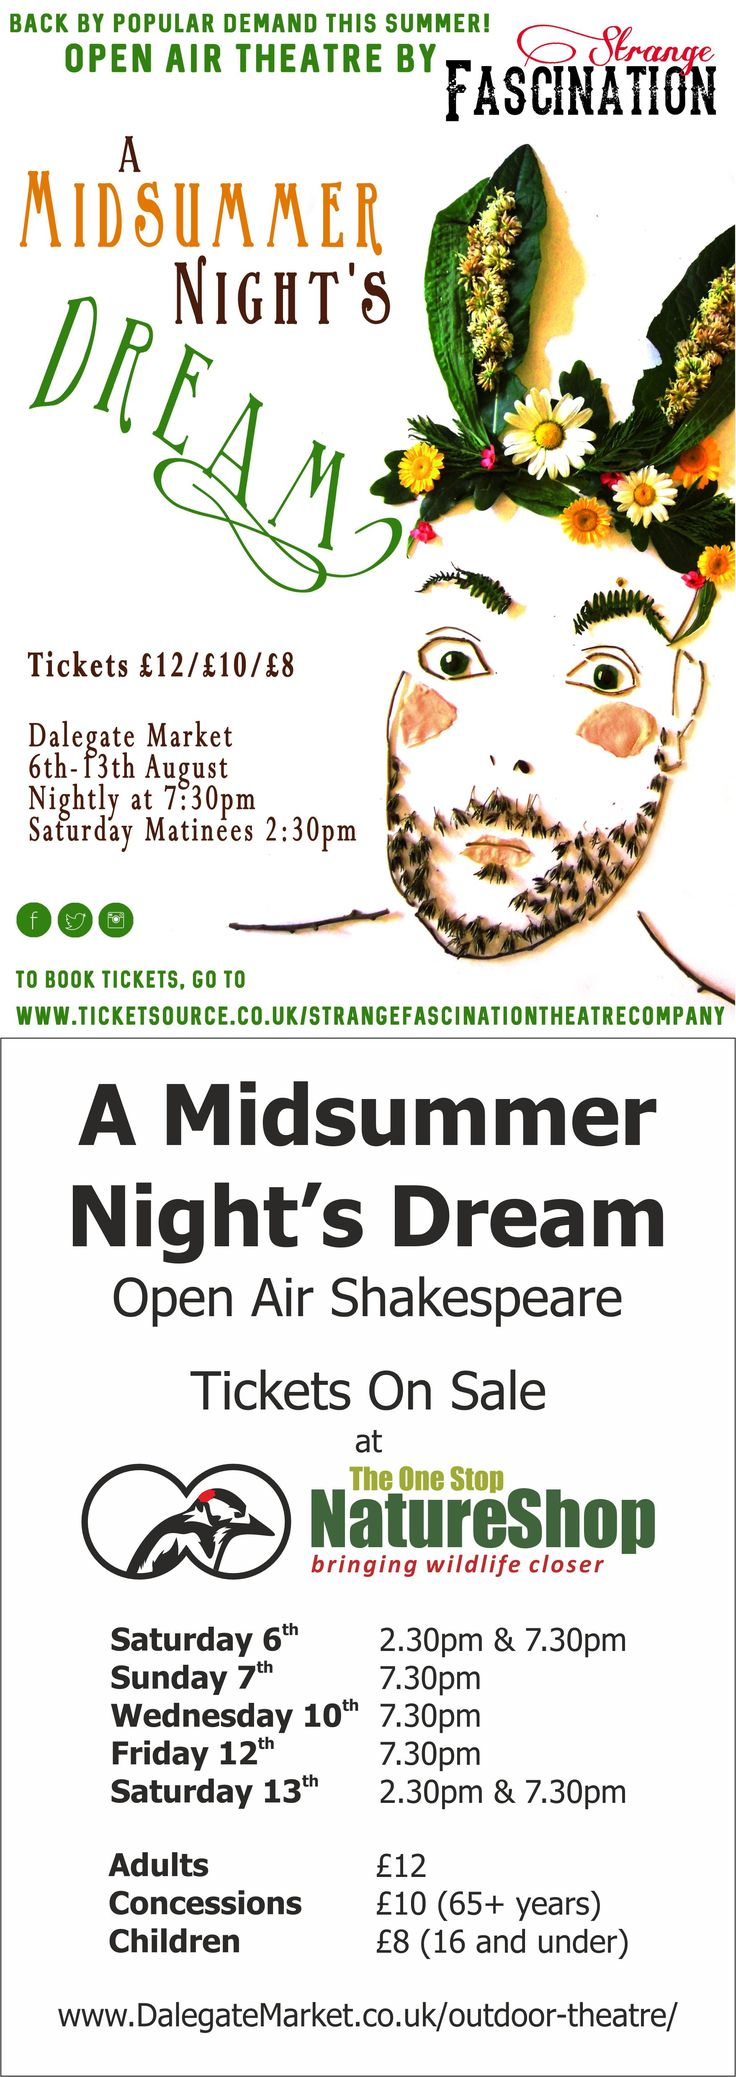 A Midsummer Night's Dream - Open Air Shakespeare from Strange Fascination Theatre Company Saturday 6th to Saturday 13th August 2016